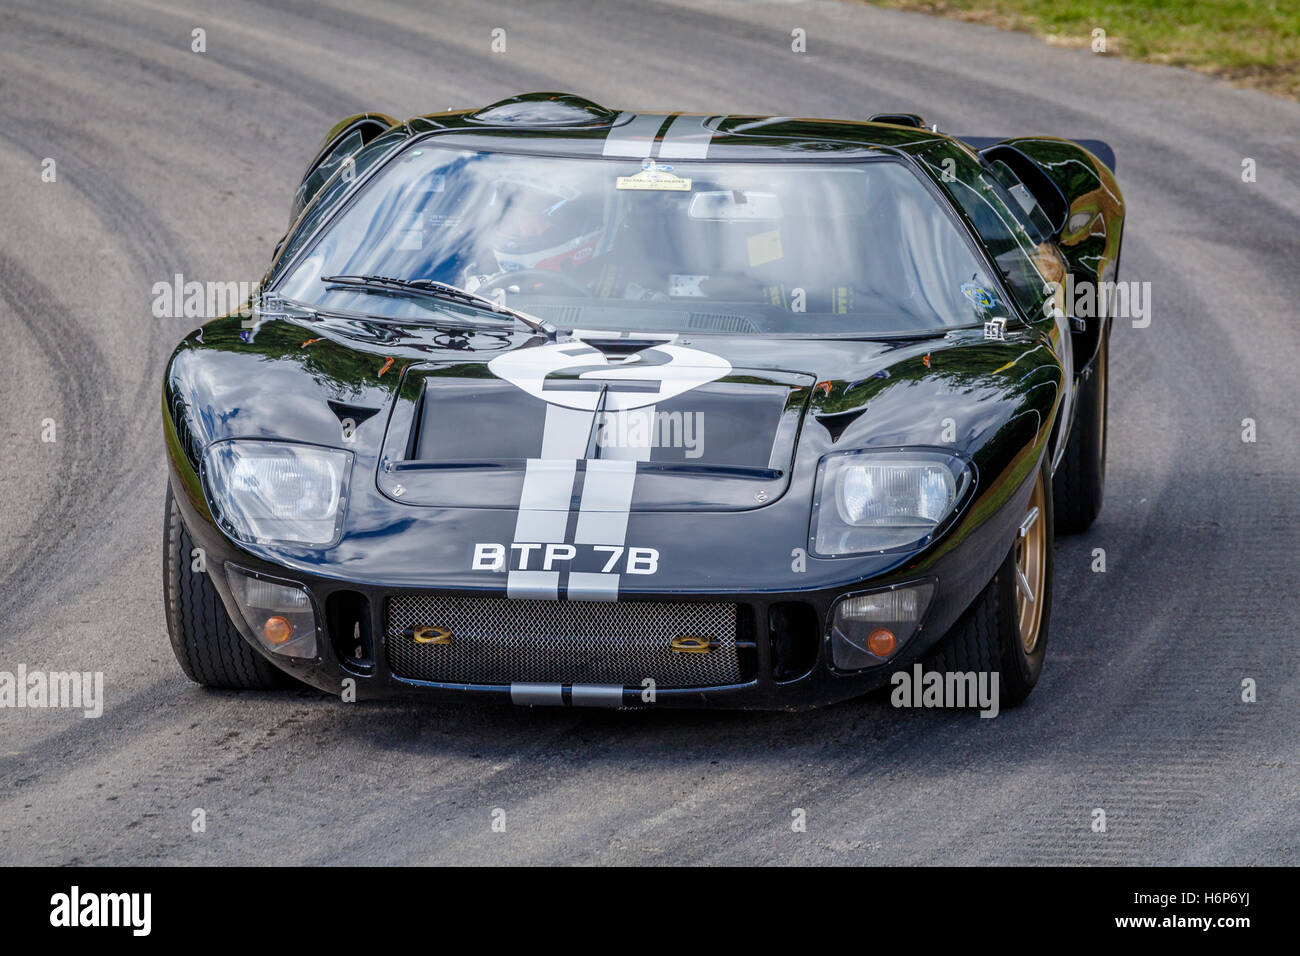 1966 ford gt40 mkii le mans winning car at the 2016 goodwood festival of speed sussex uk